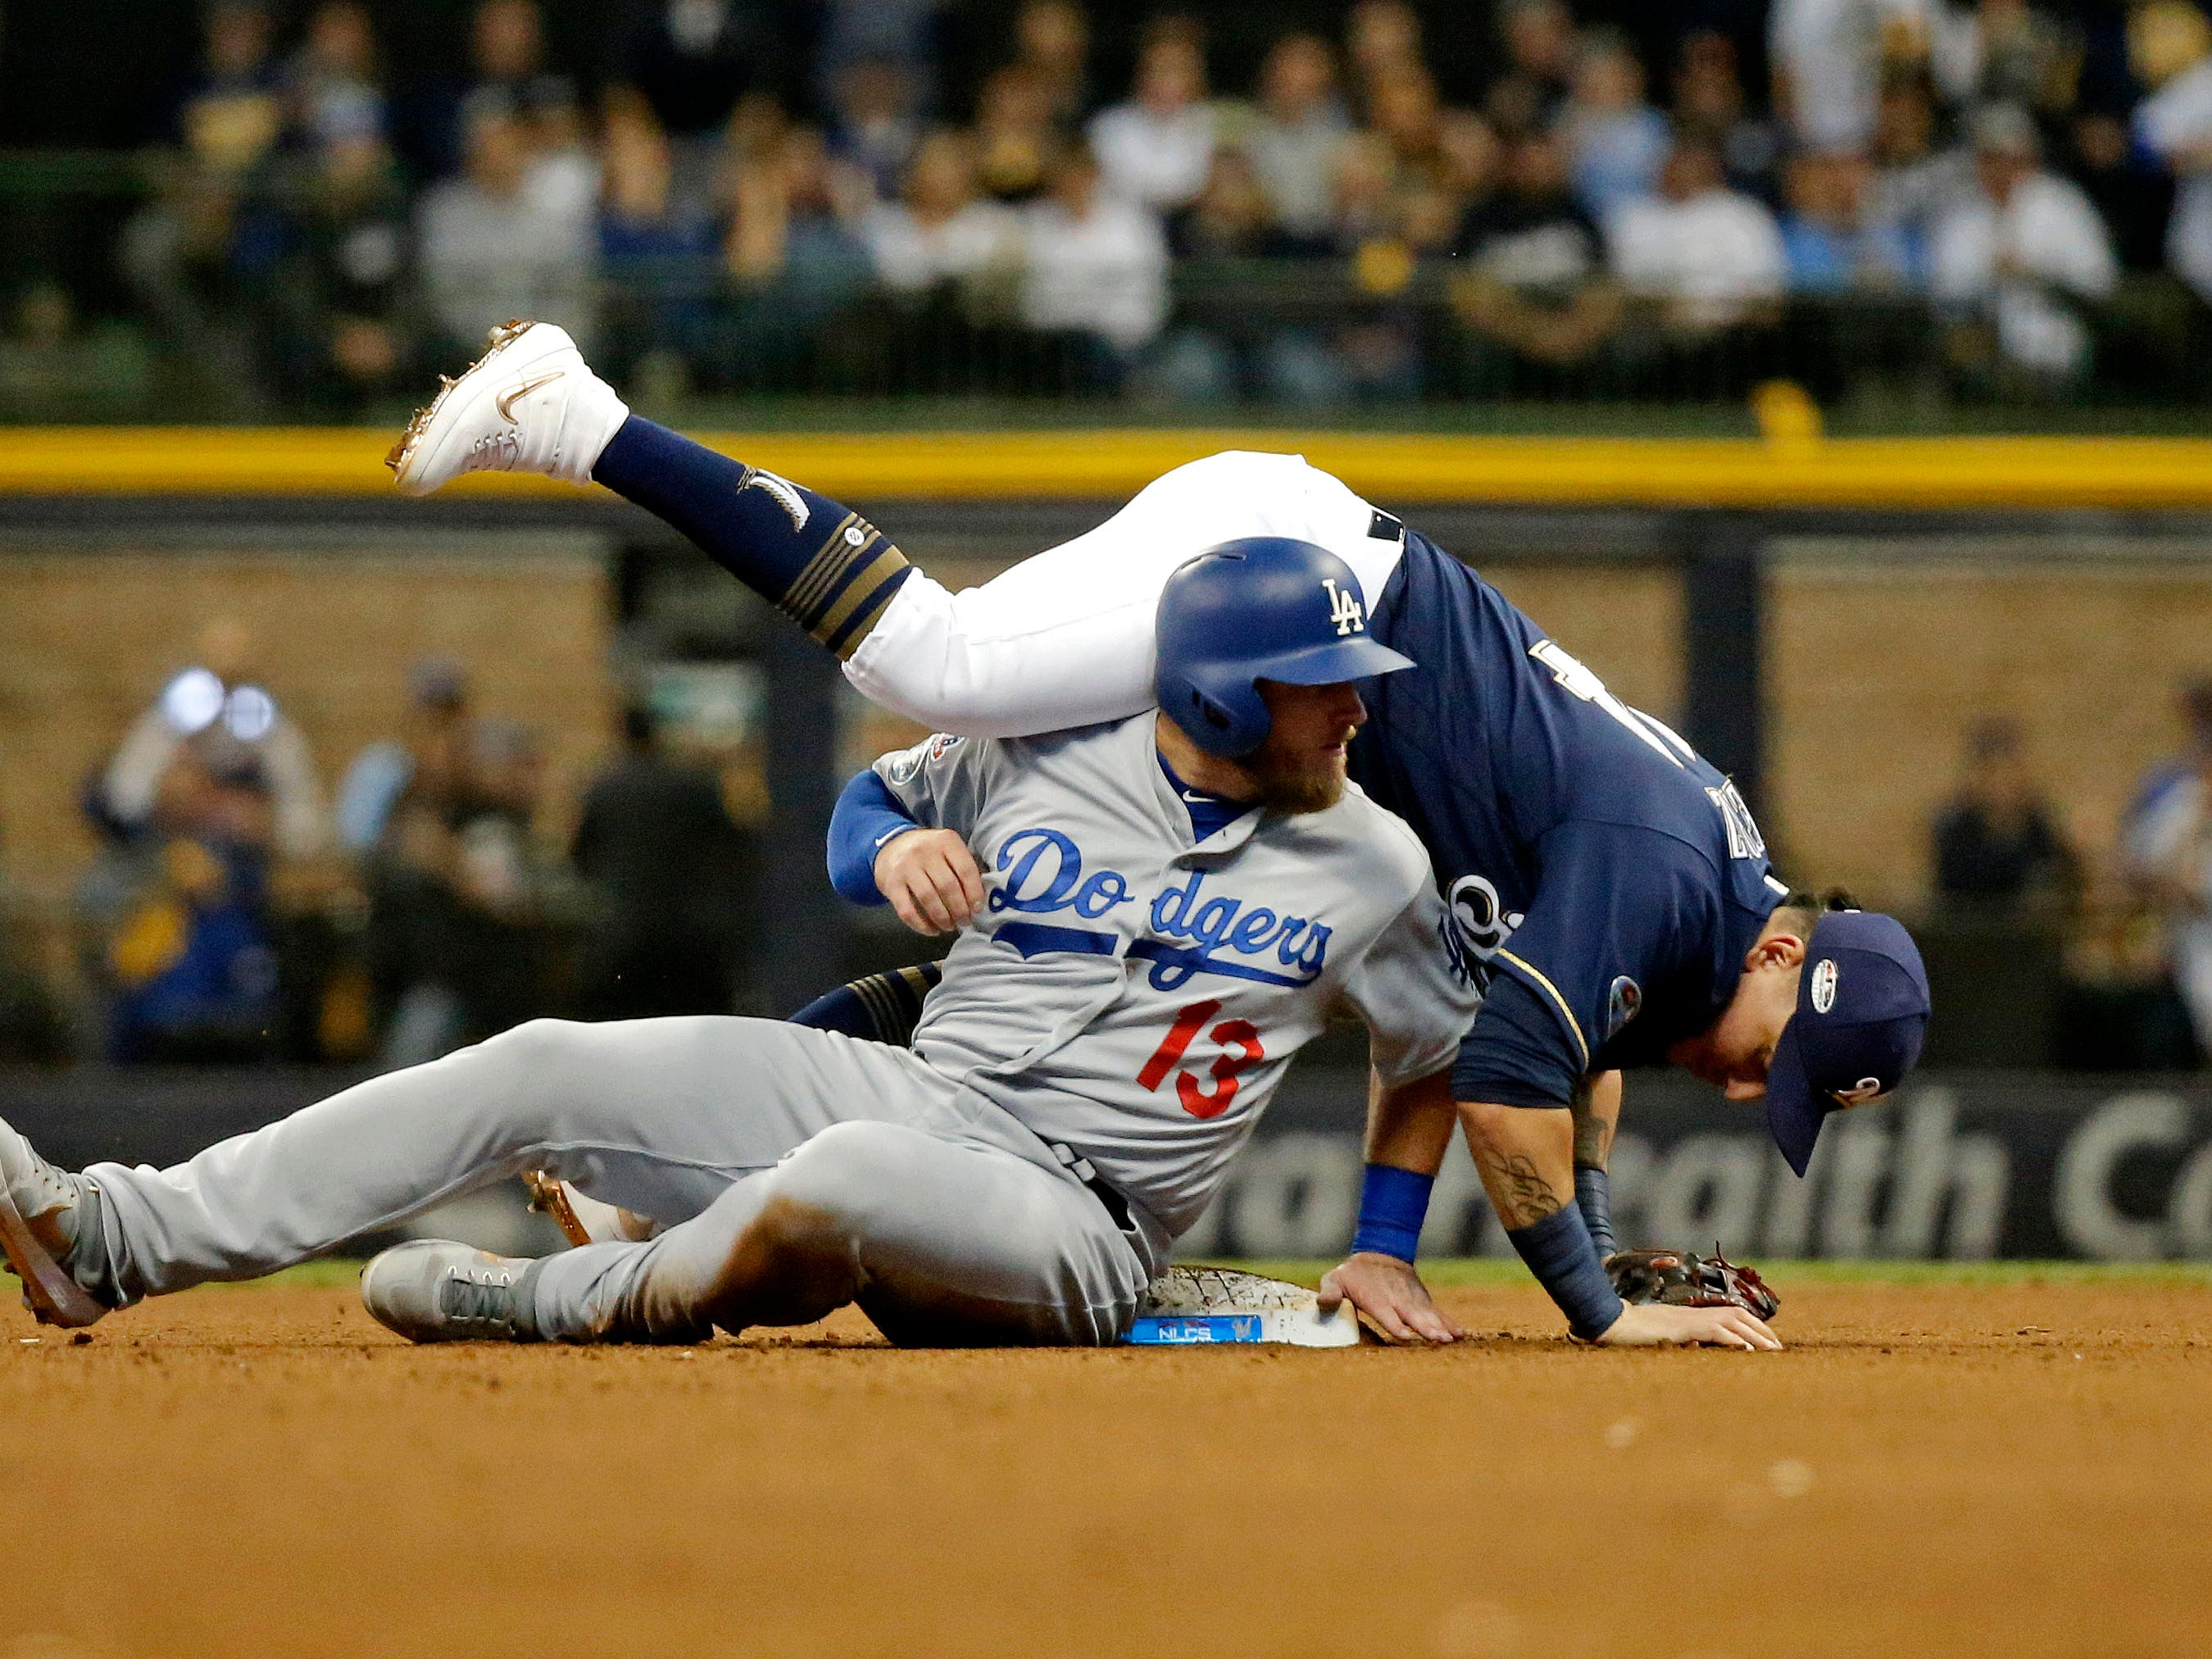 NLCS Game 2: Dodgers' Max Muncy slides through second baseman Hernan Perez during a double play in the eighth inning.